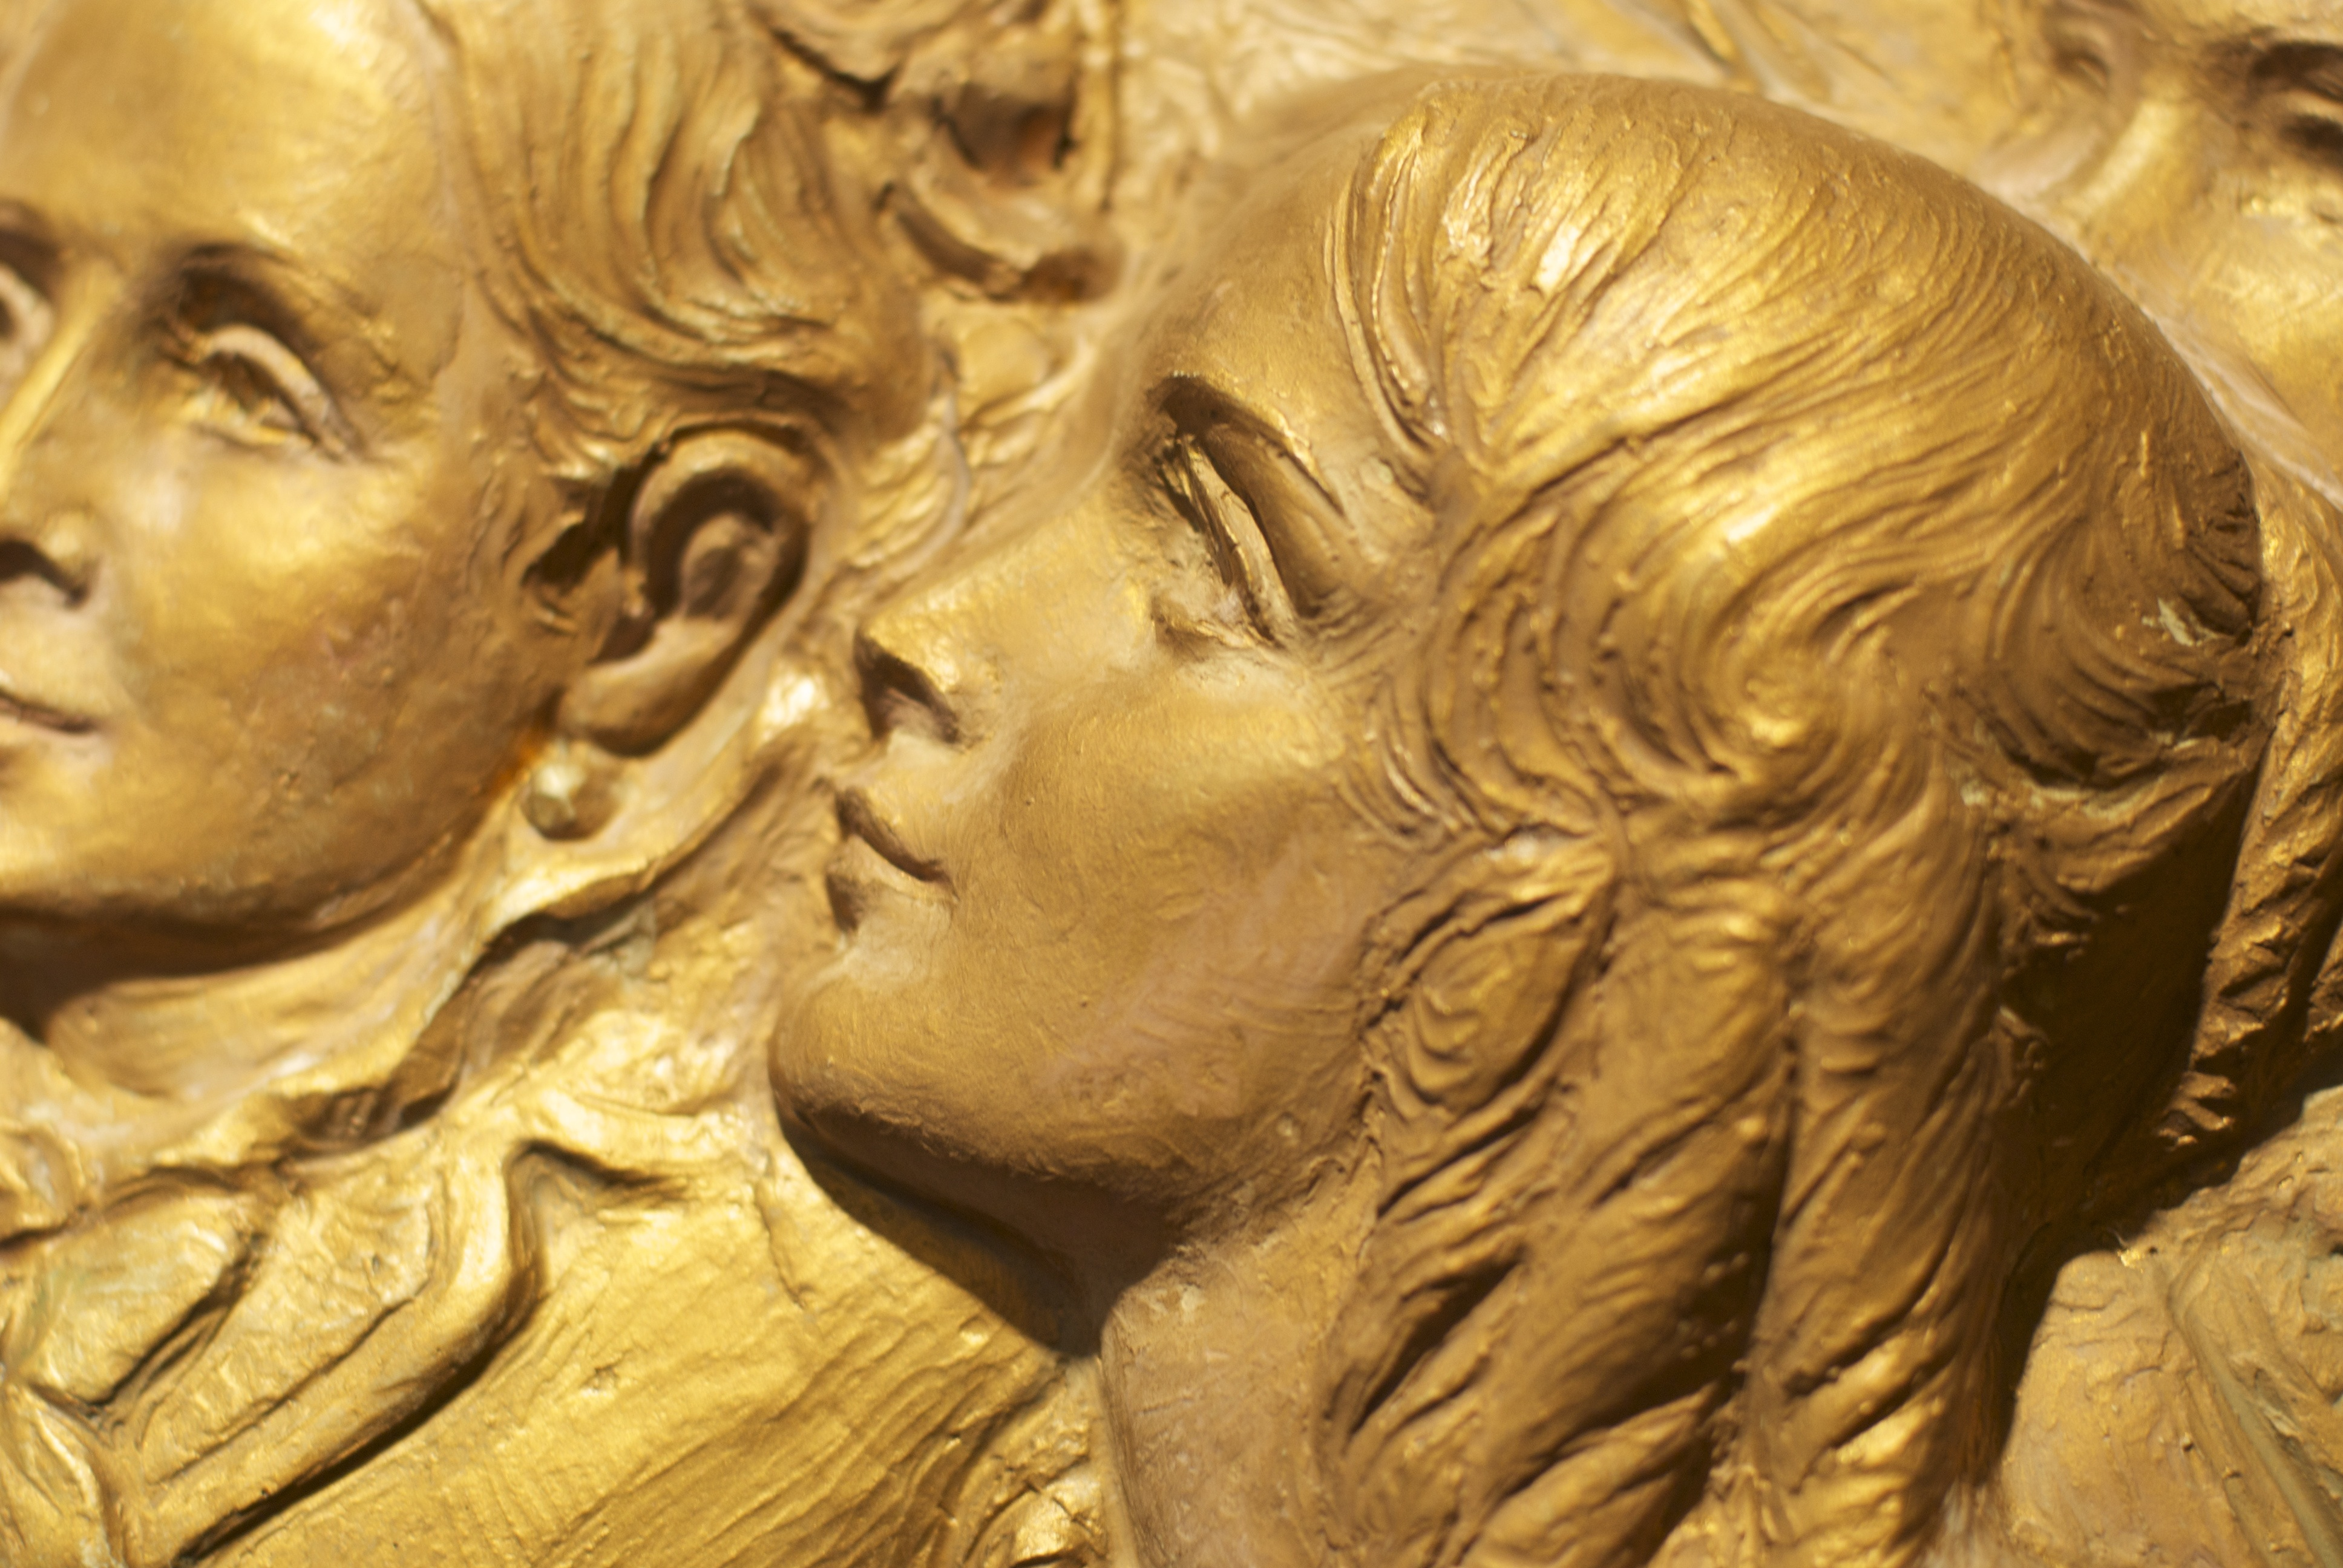 Detail of bas relief sculpted by Elaine Brockbank Evans, in the Berkeley Ward building, California.